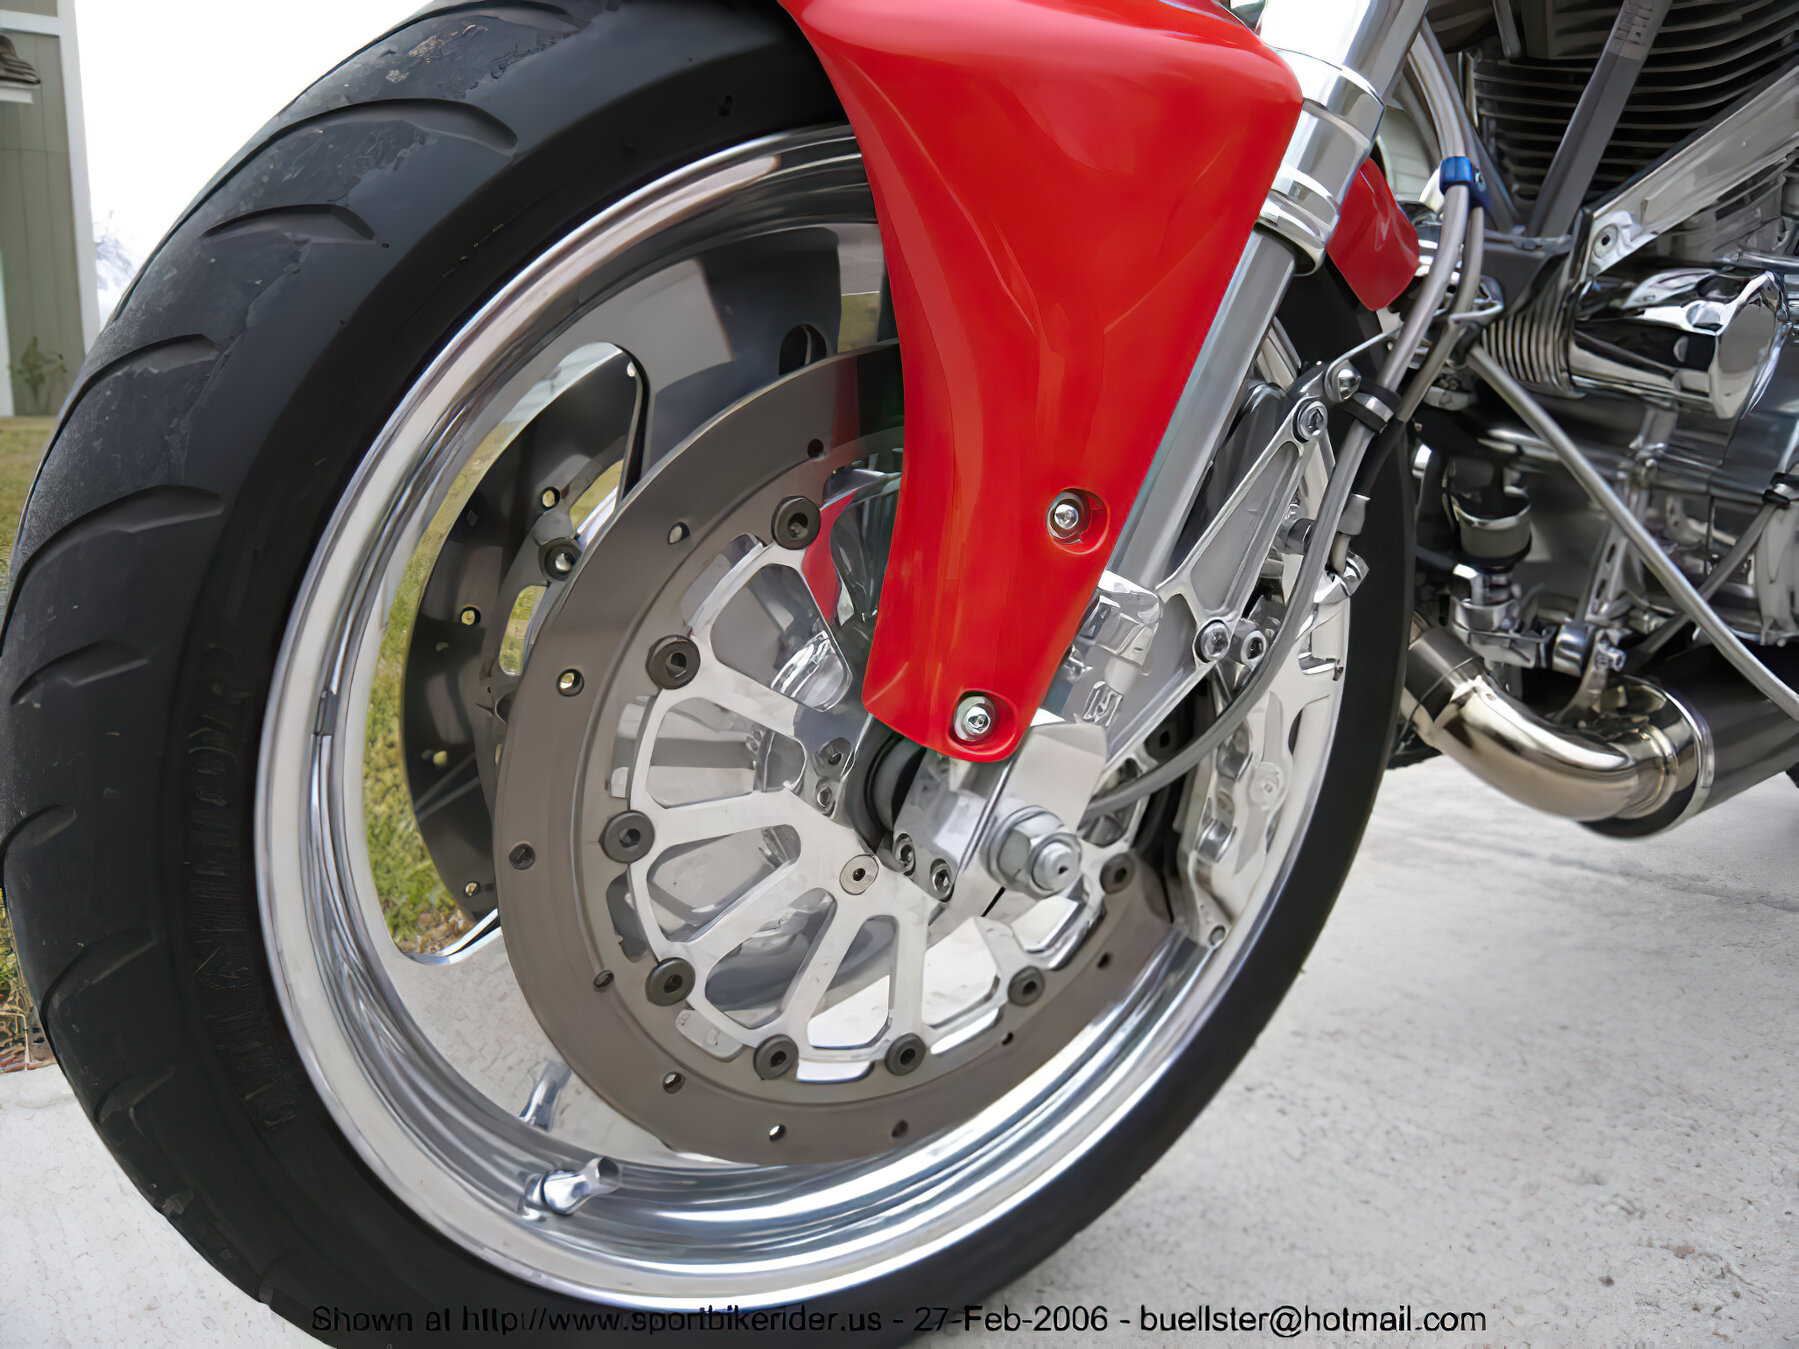 Buell S1/S2/S3 - ID: 97391